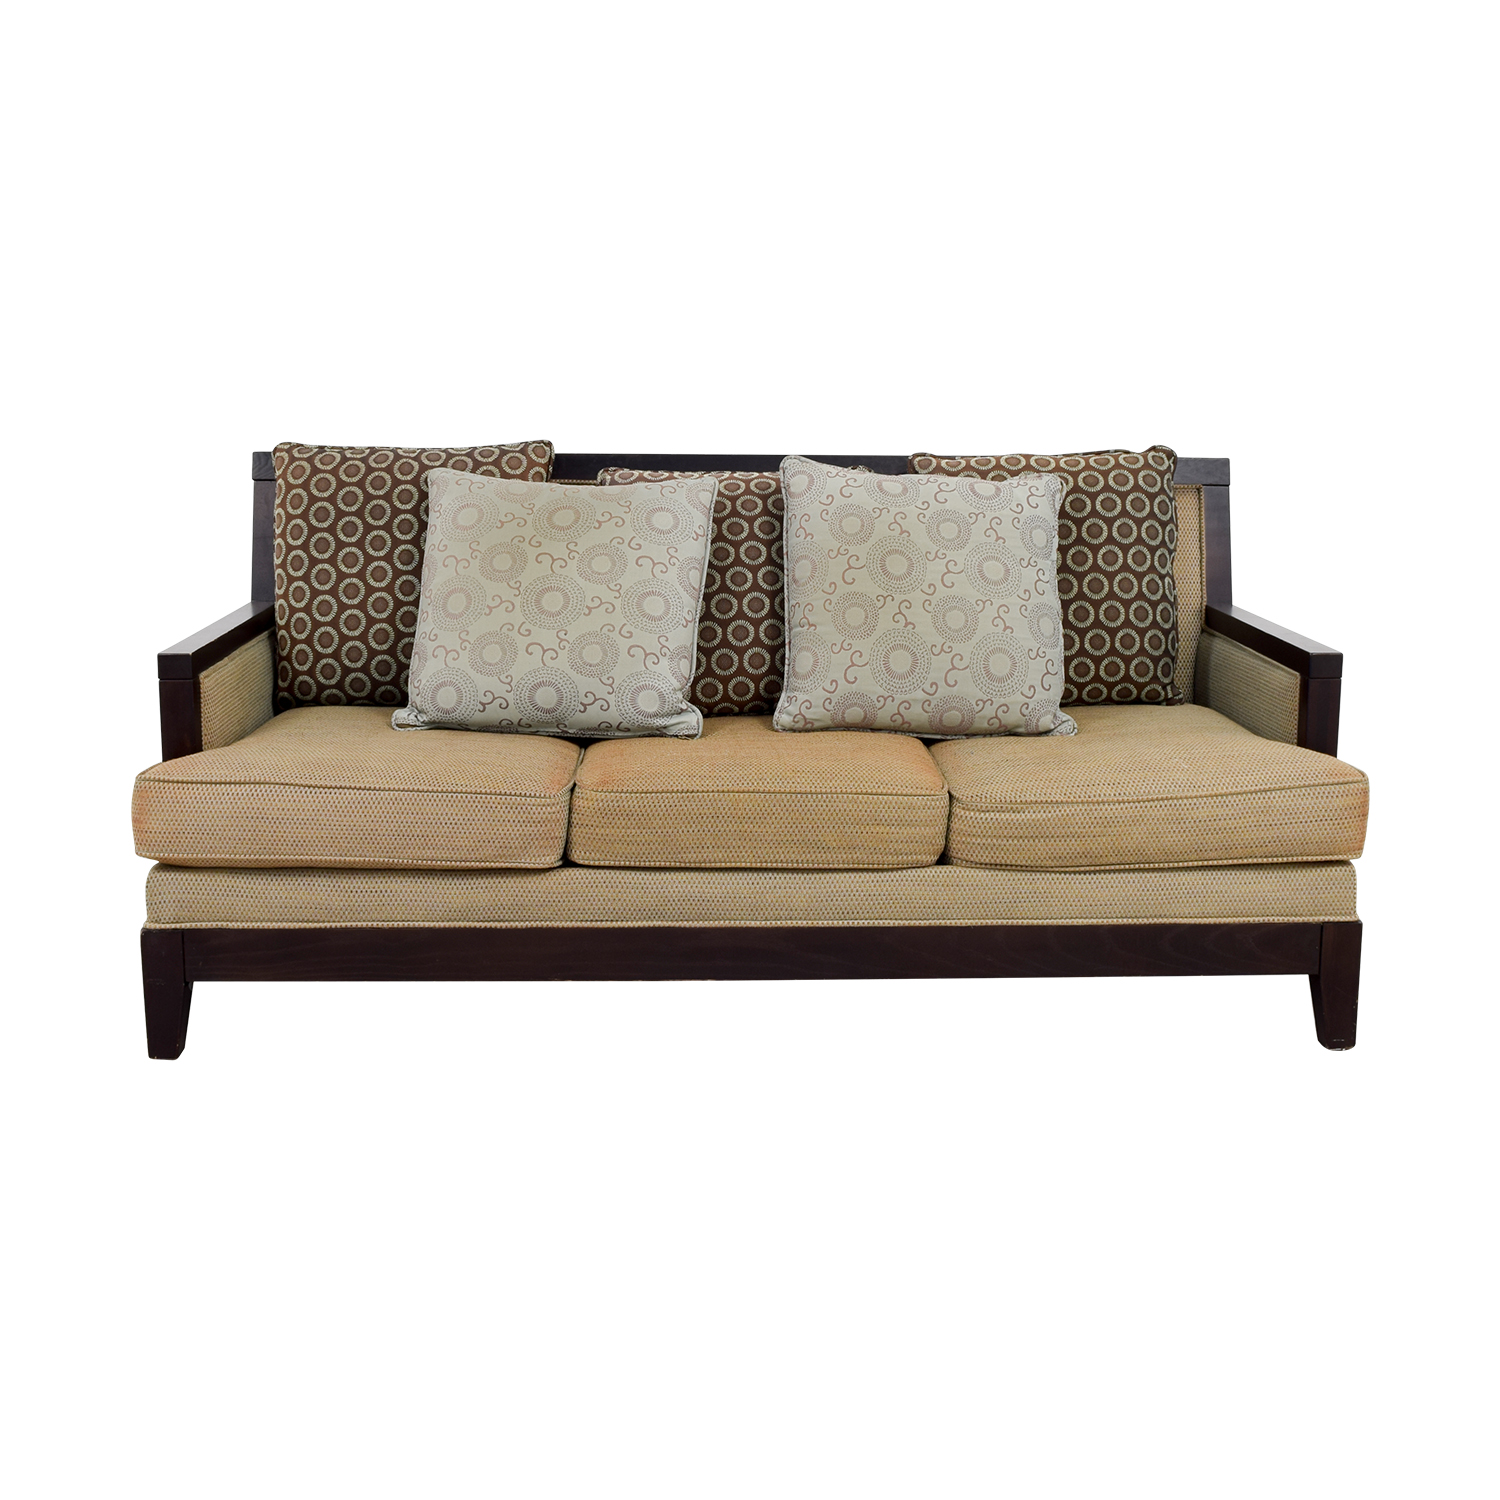 Tan Three-Cushion Couch with Wood Frame coupon